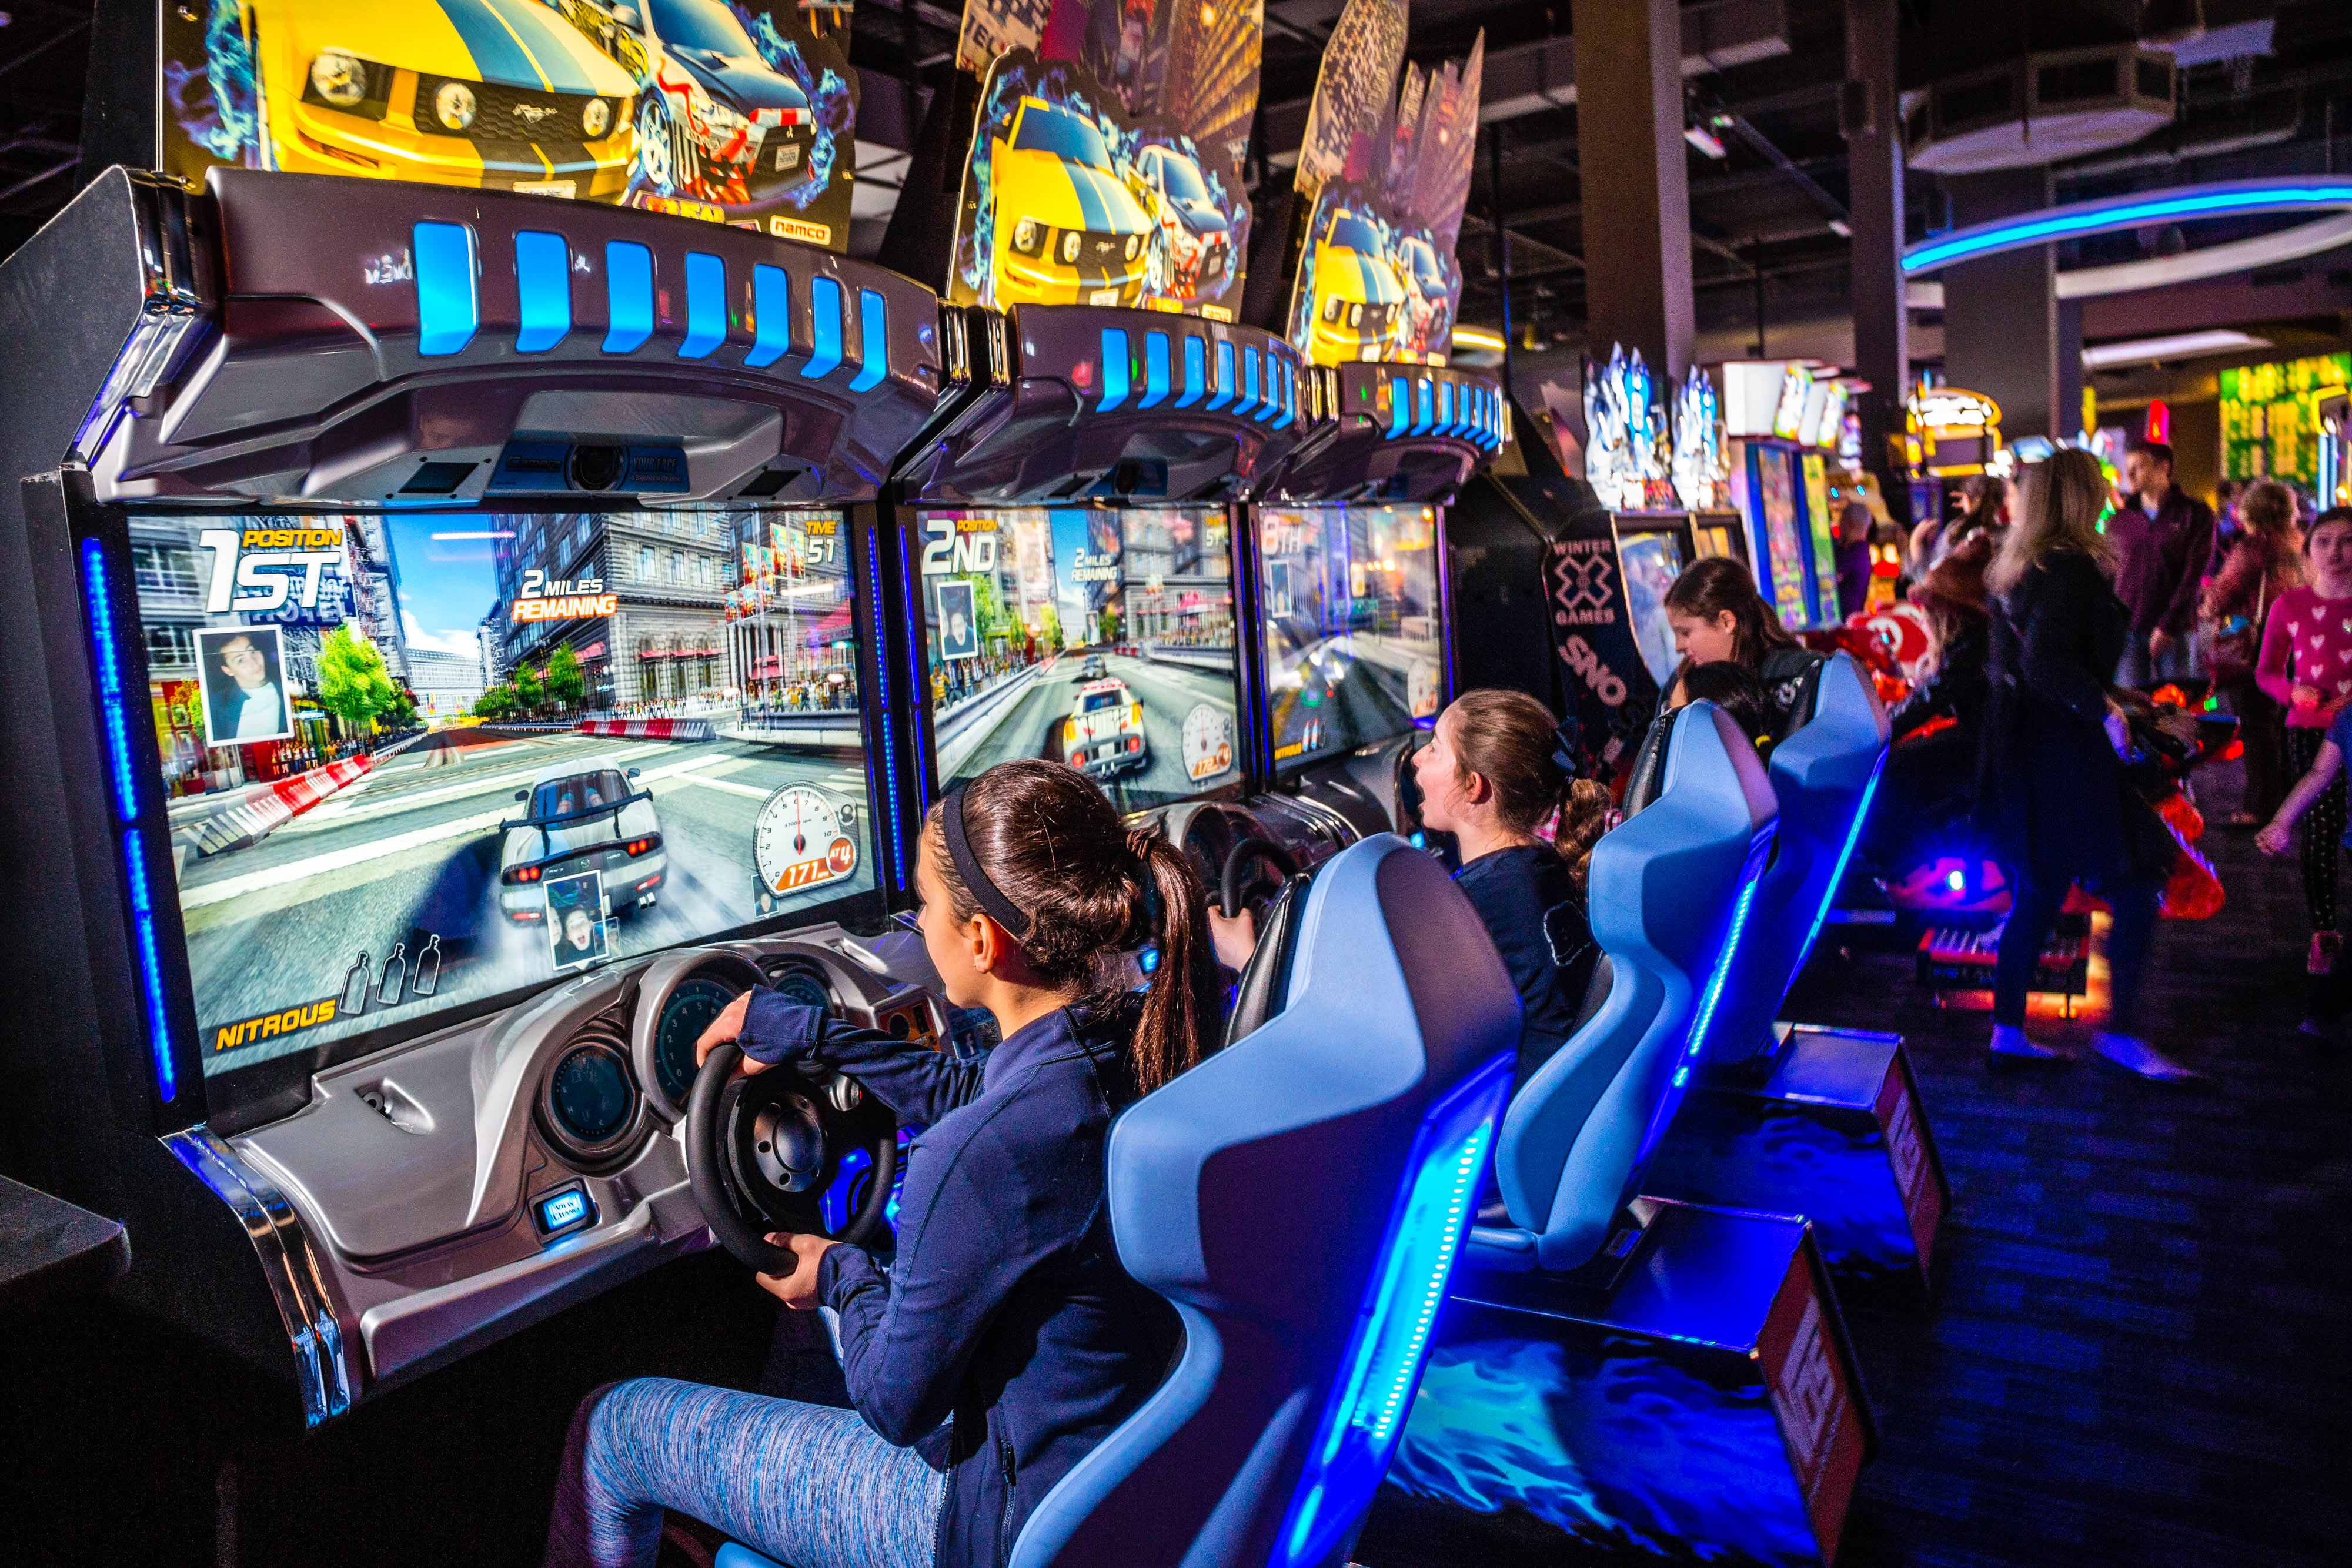 Dave & Buster's shares jump as revamped menu, new games boost strong same-store sales growth